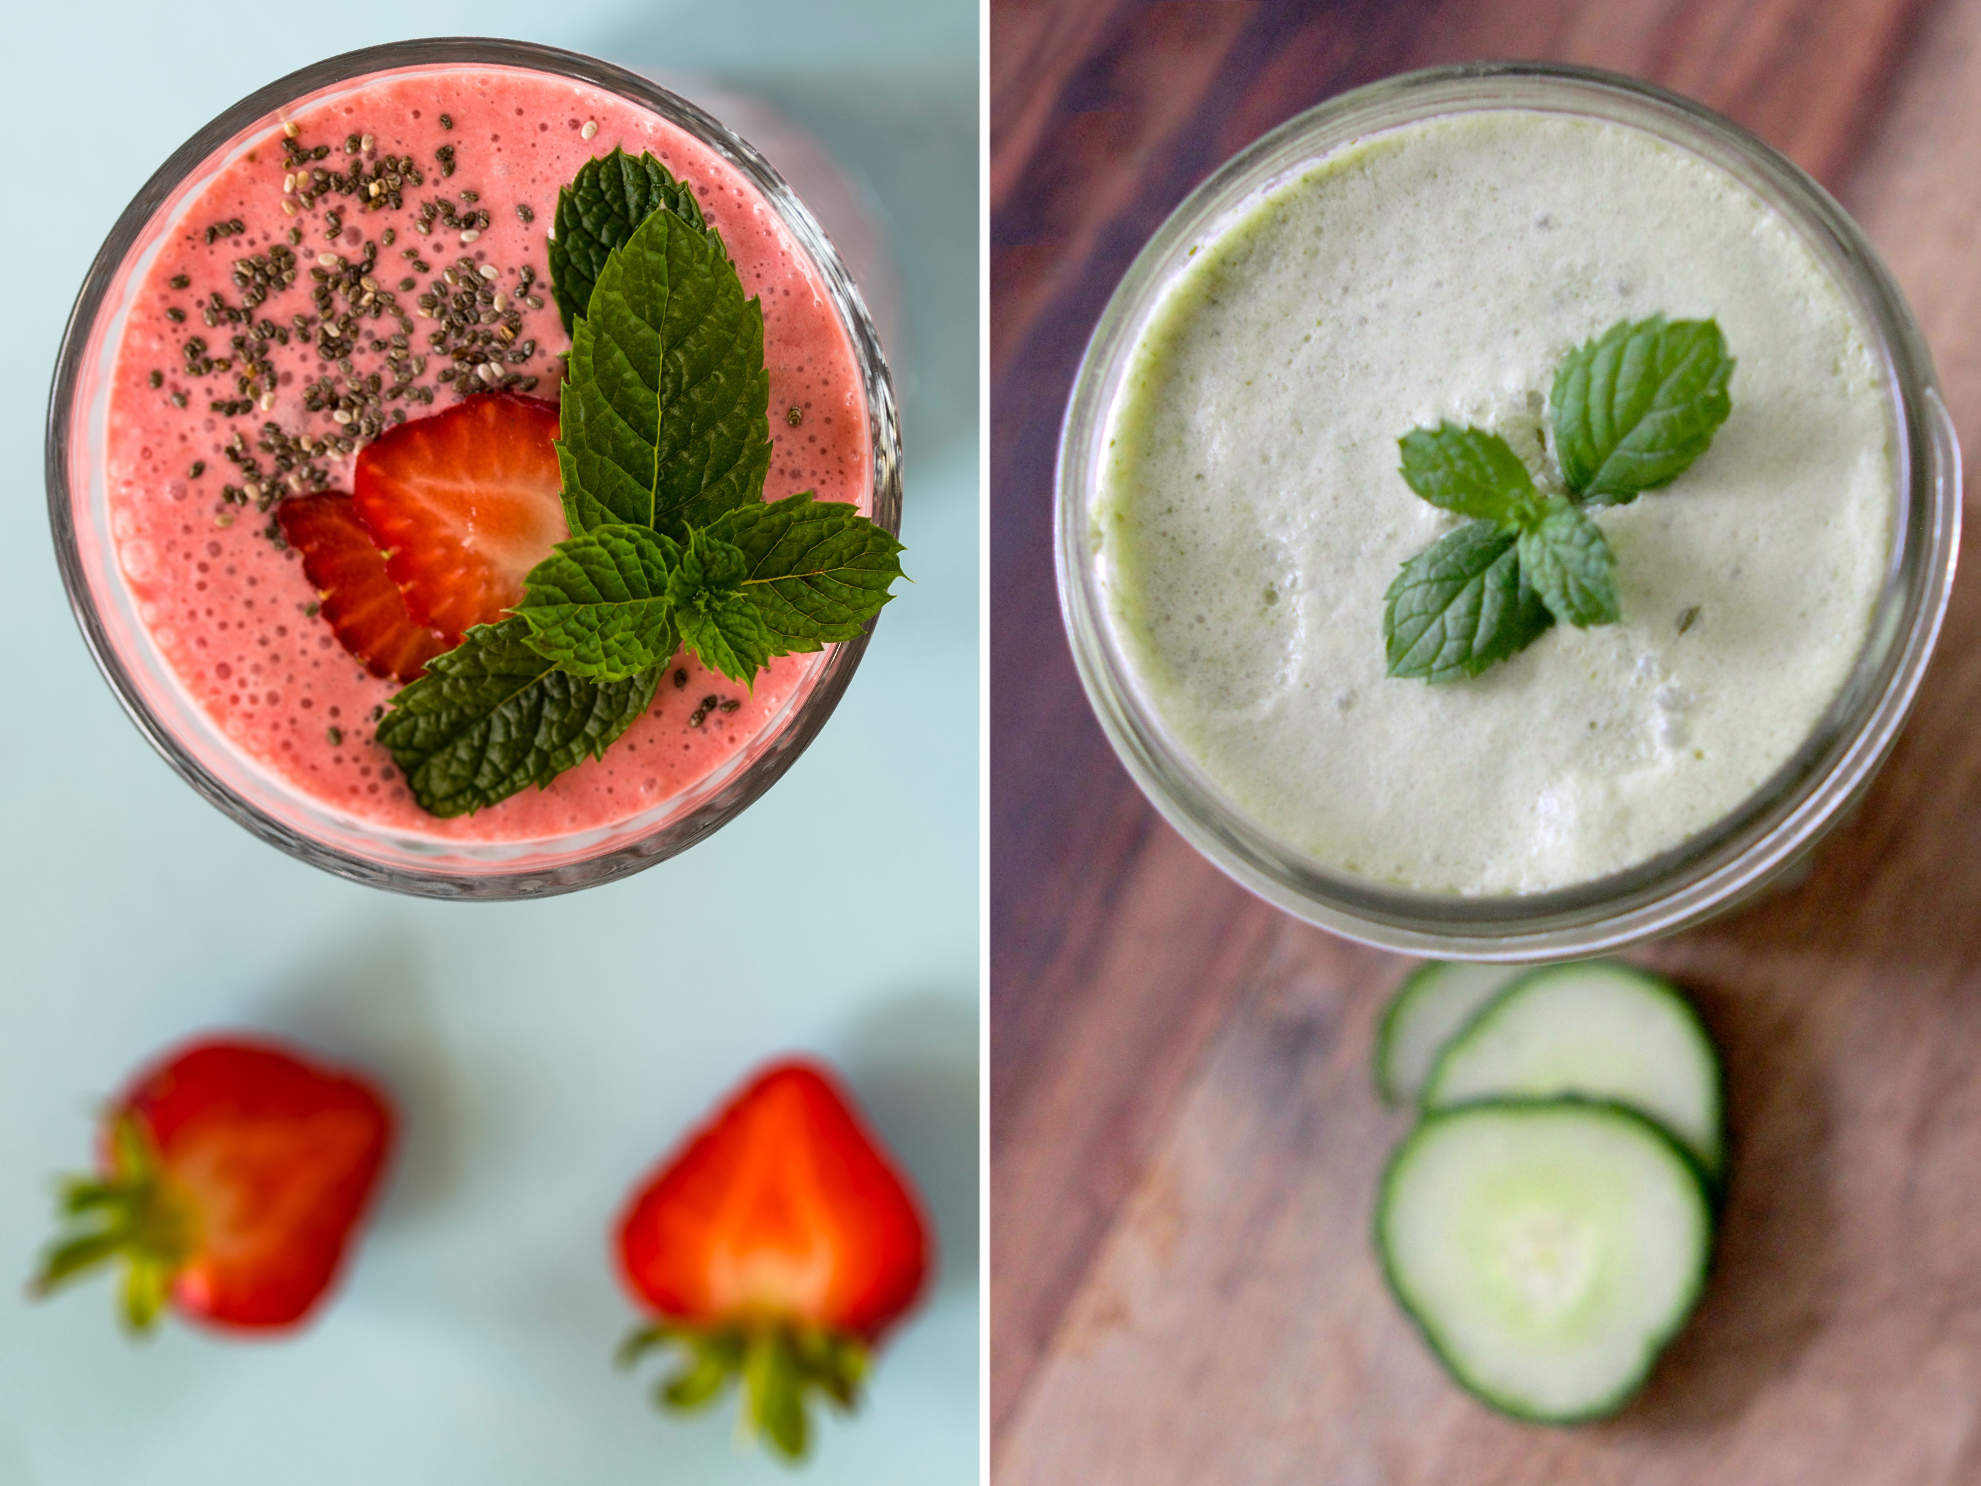 Low carb smoothie recipes for weight loss